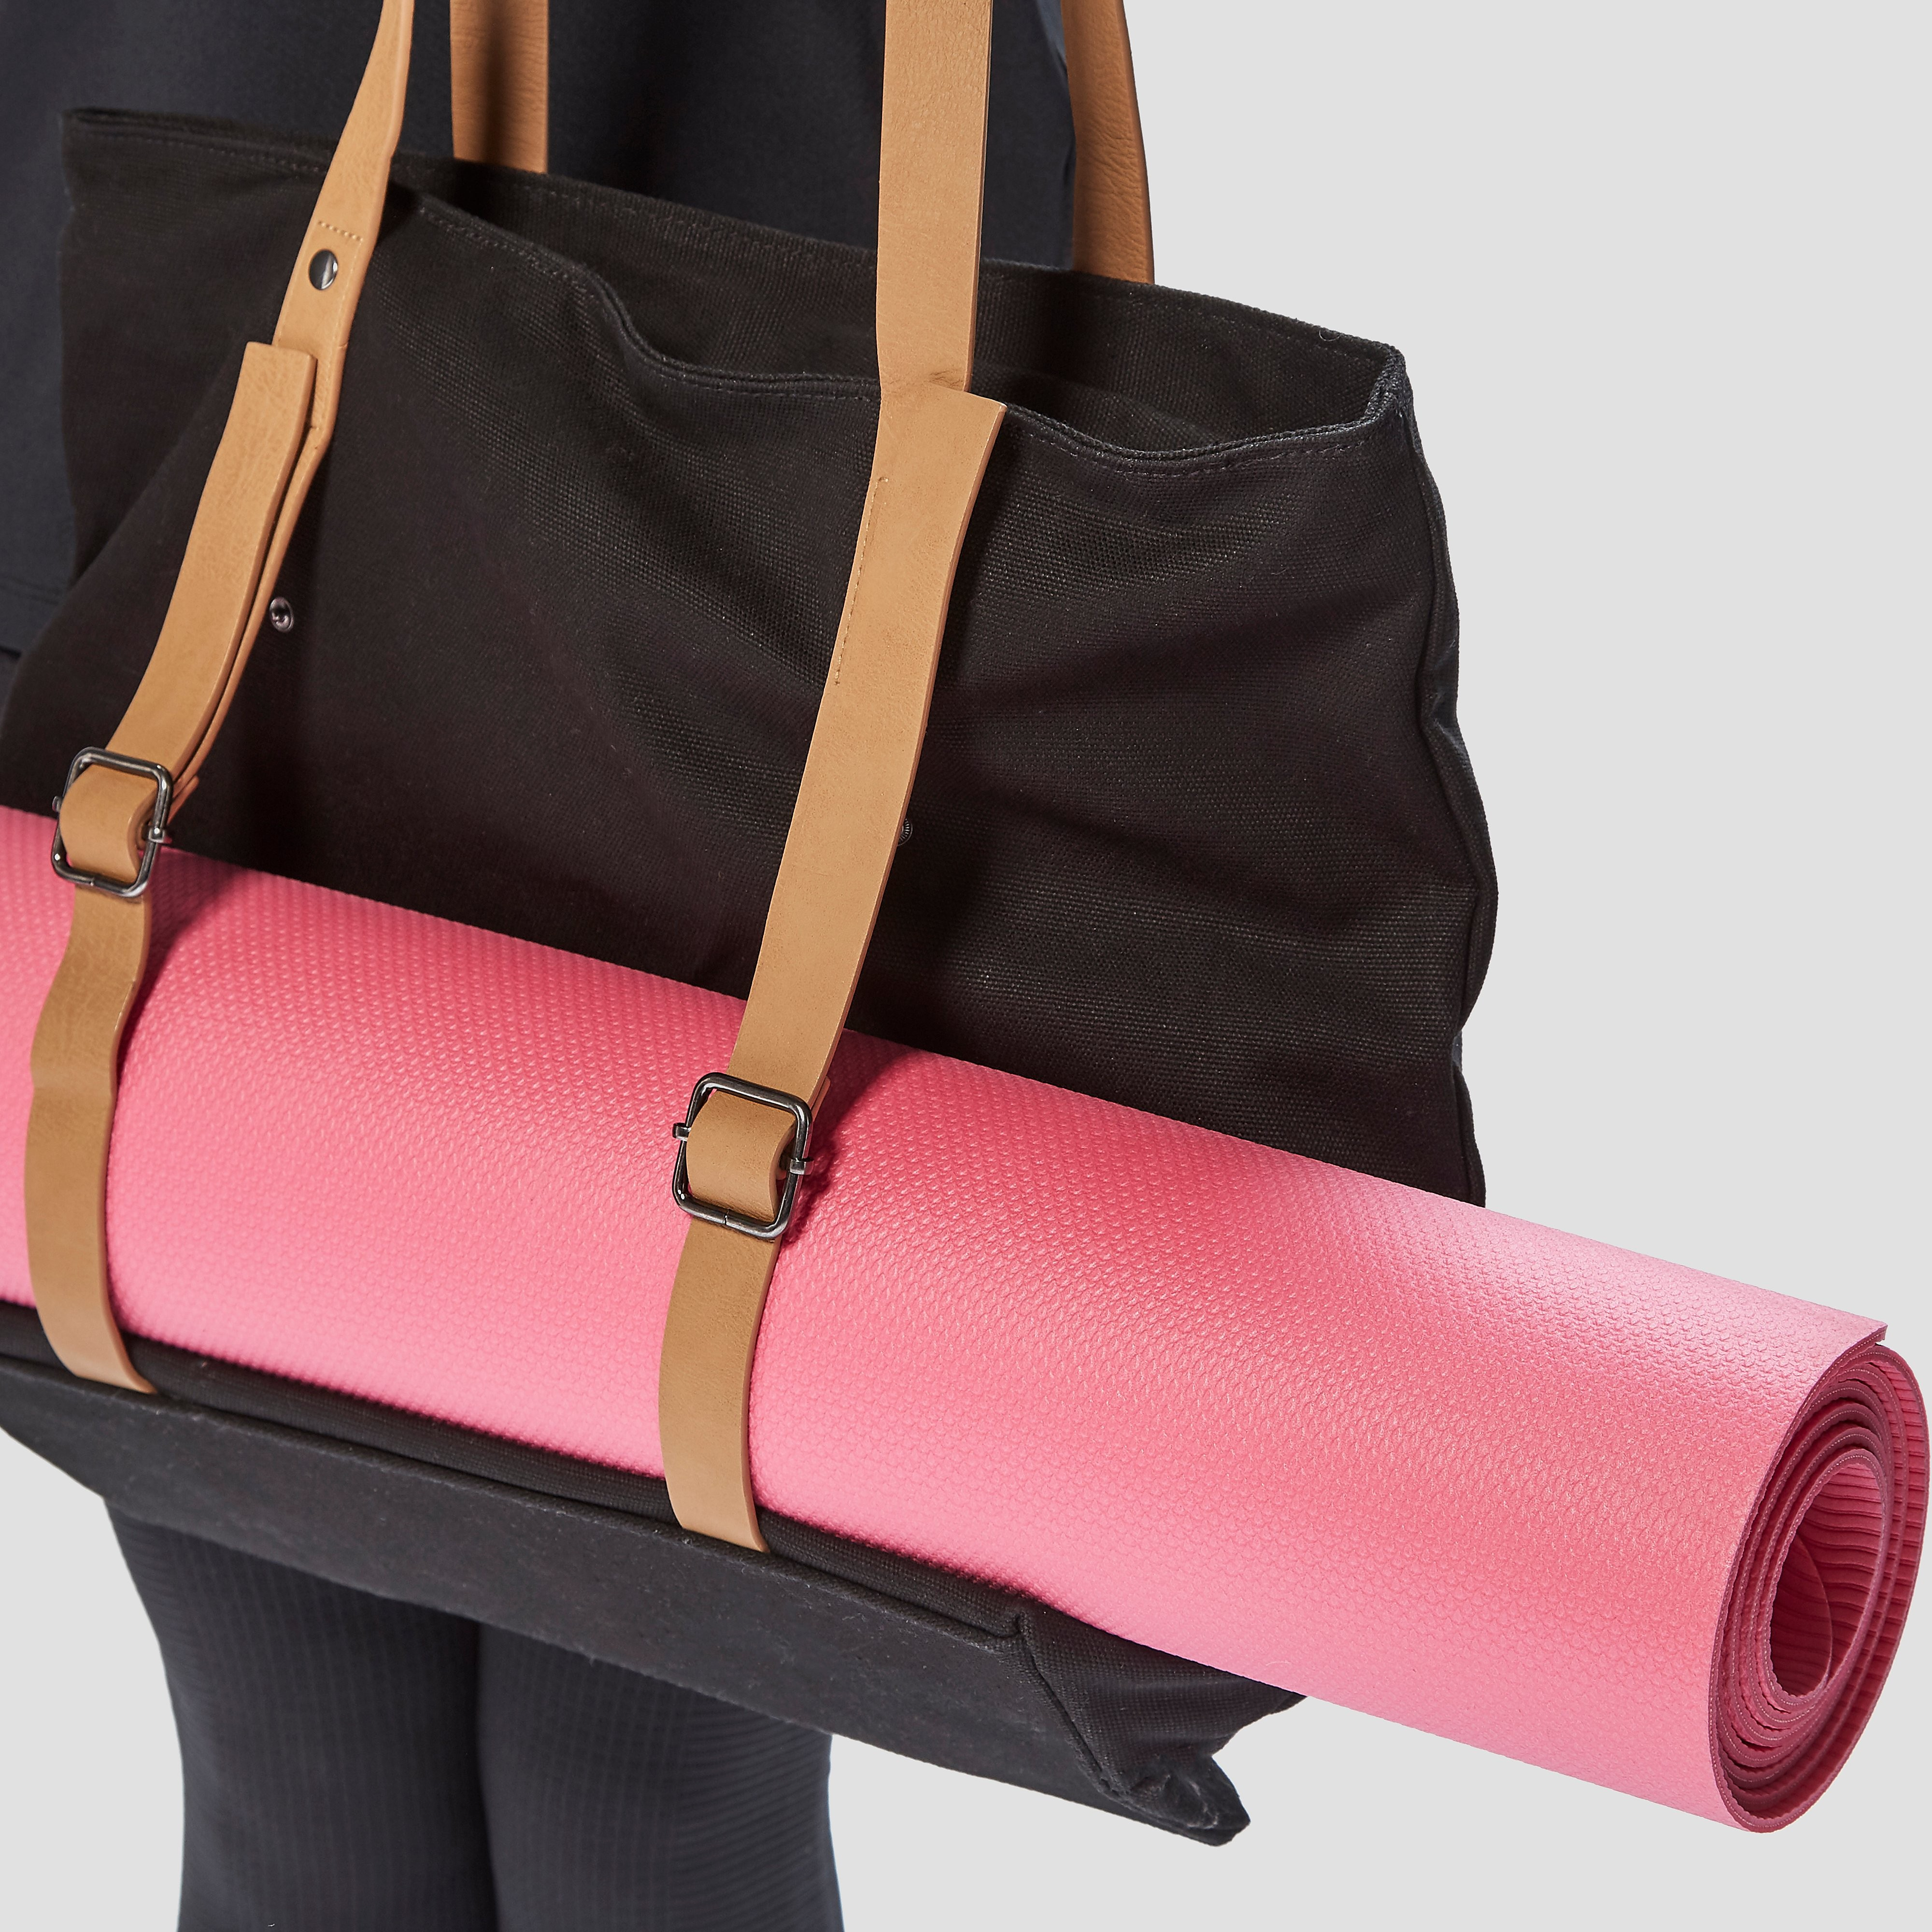 Lorna Jane Yoga Bag